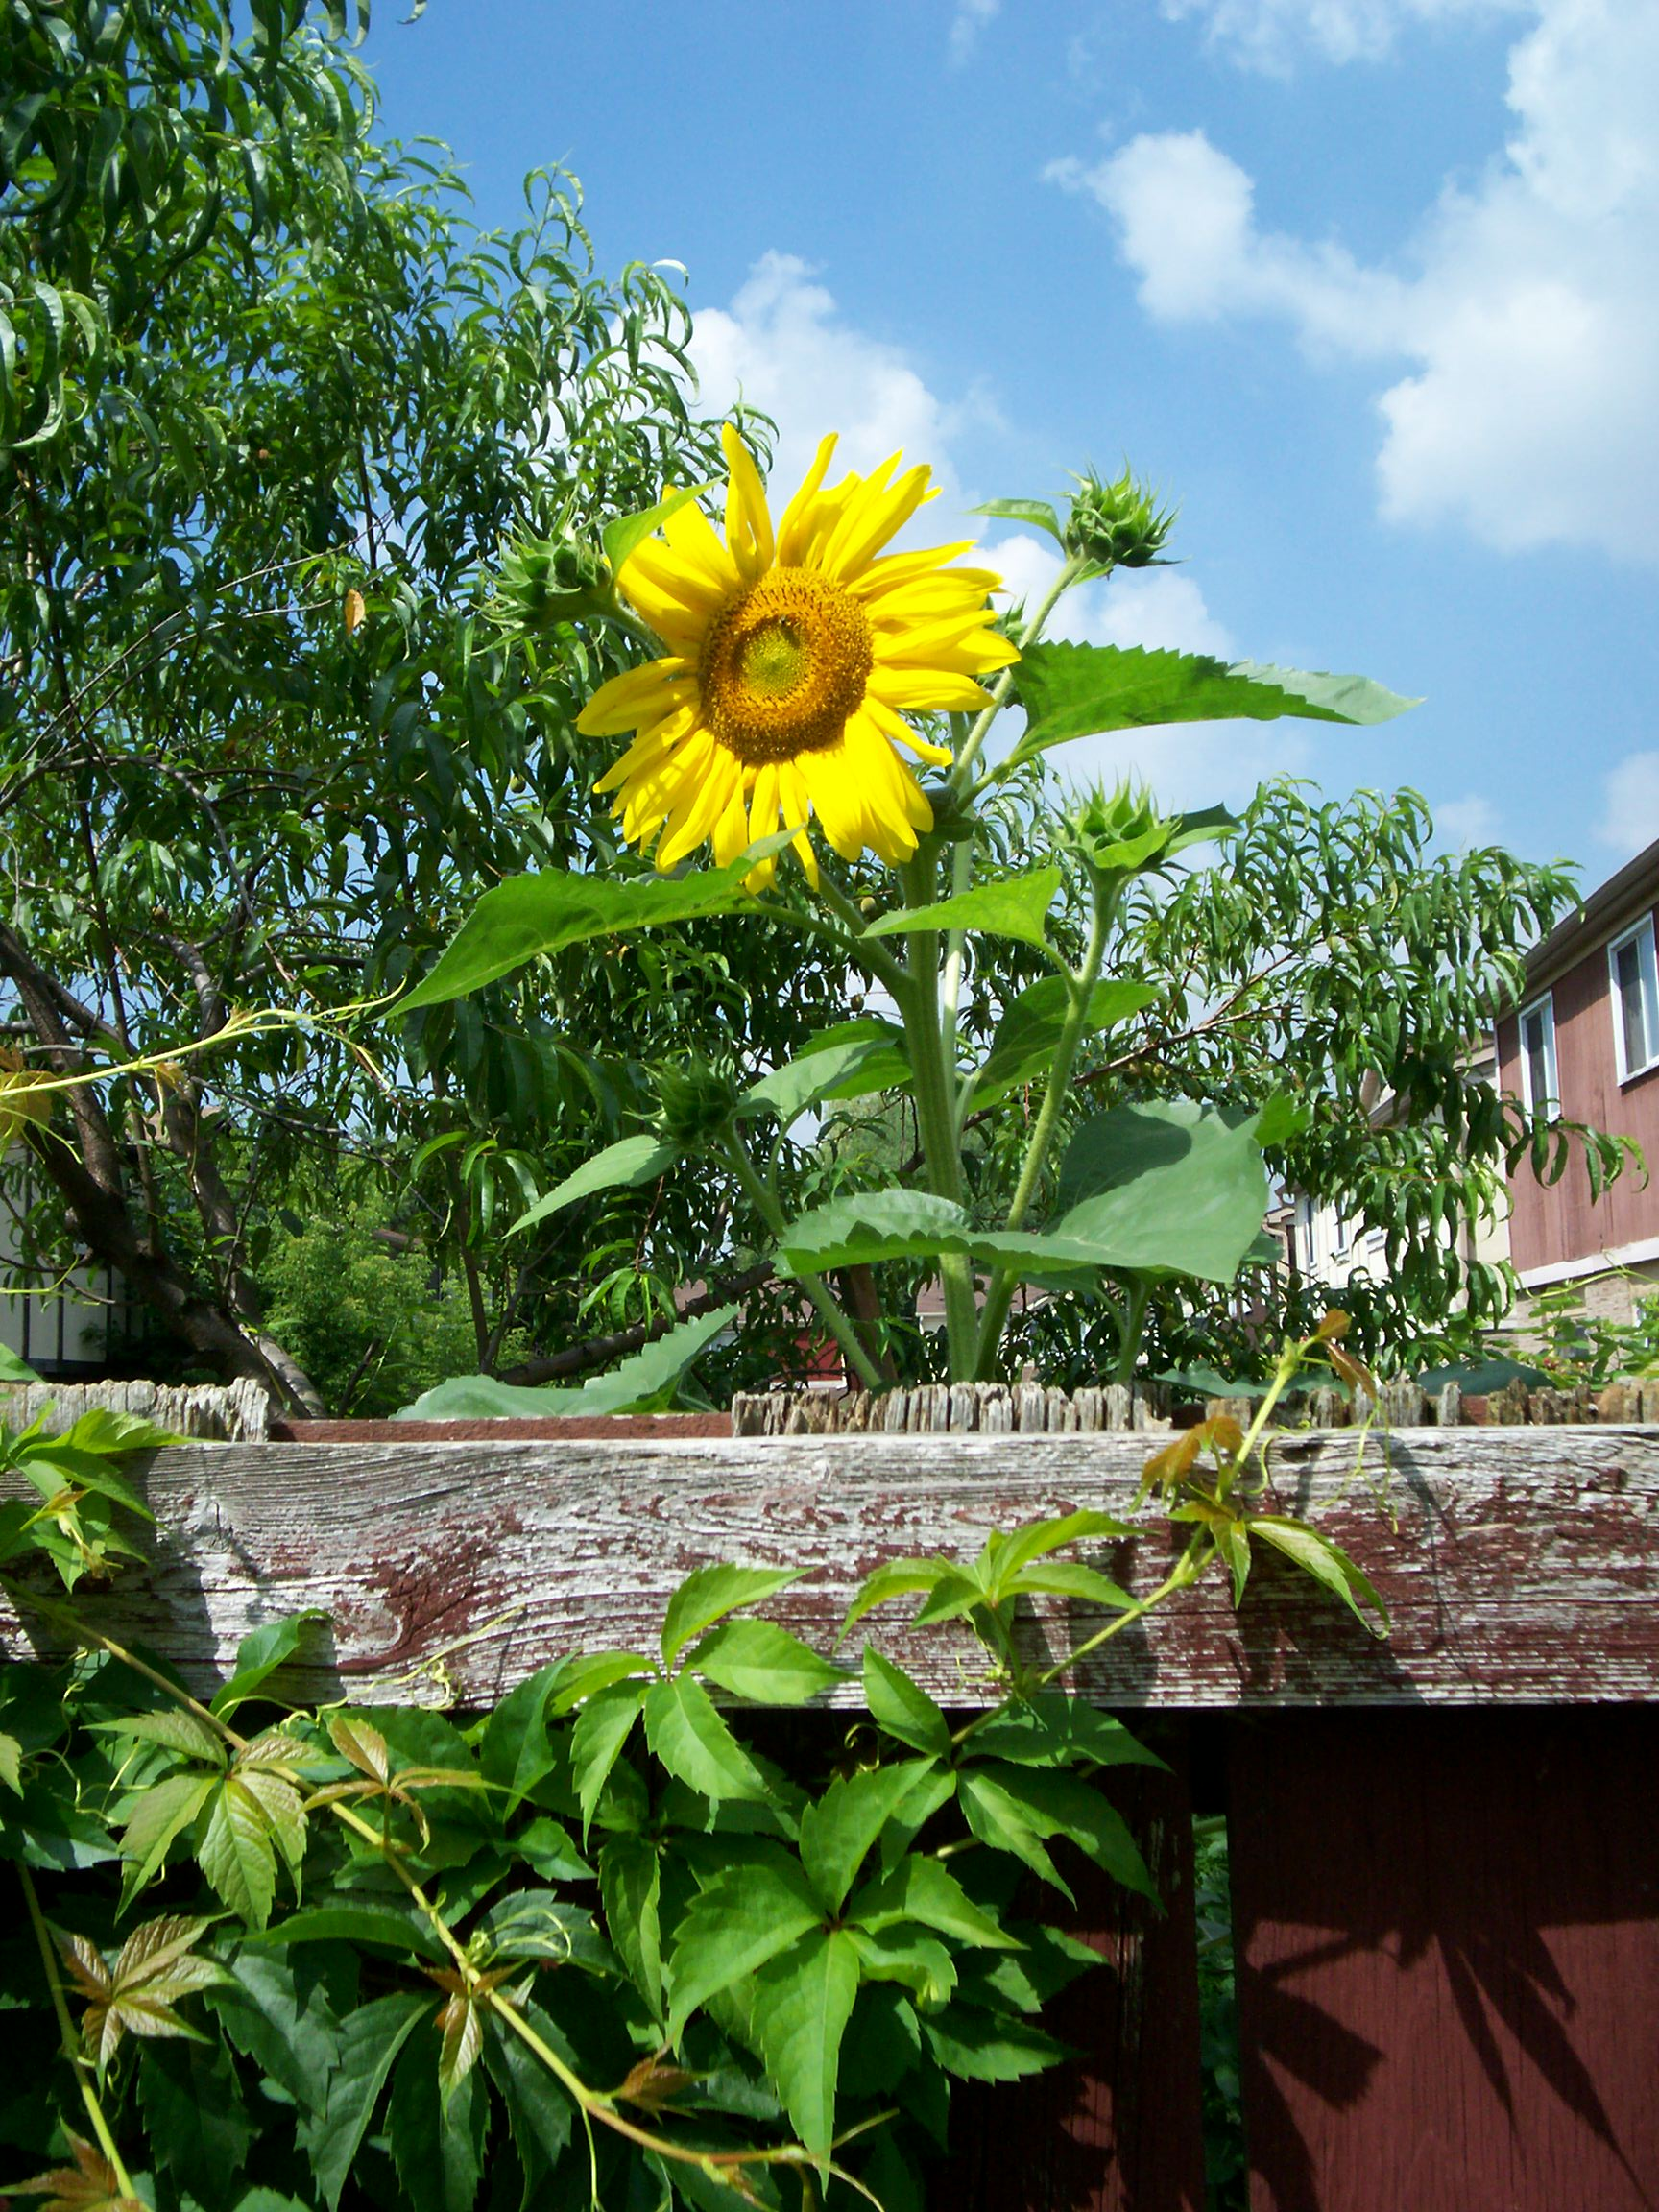 sunflower behind a fence